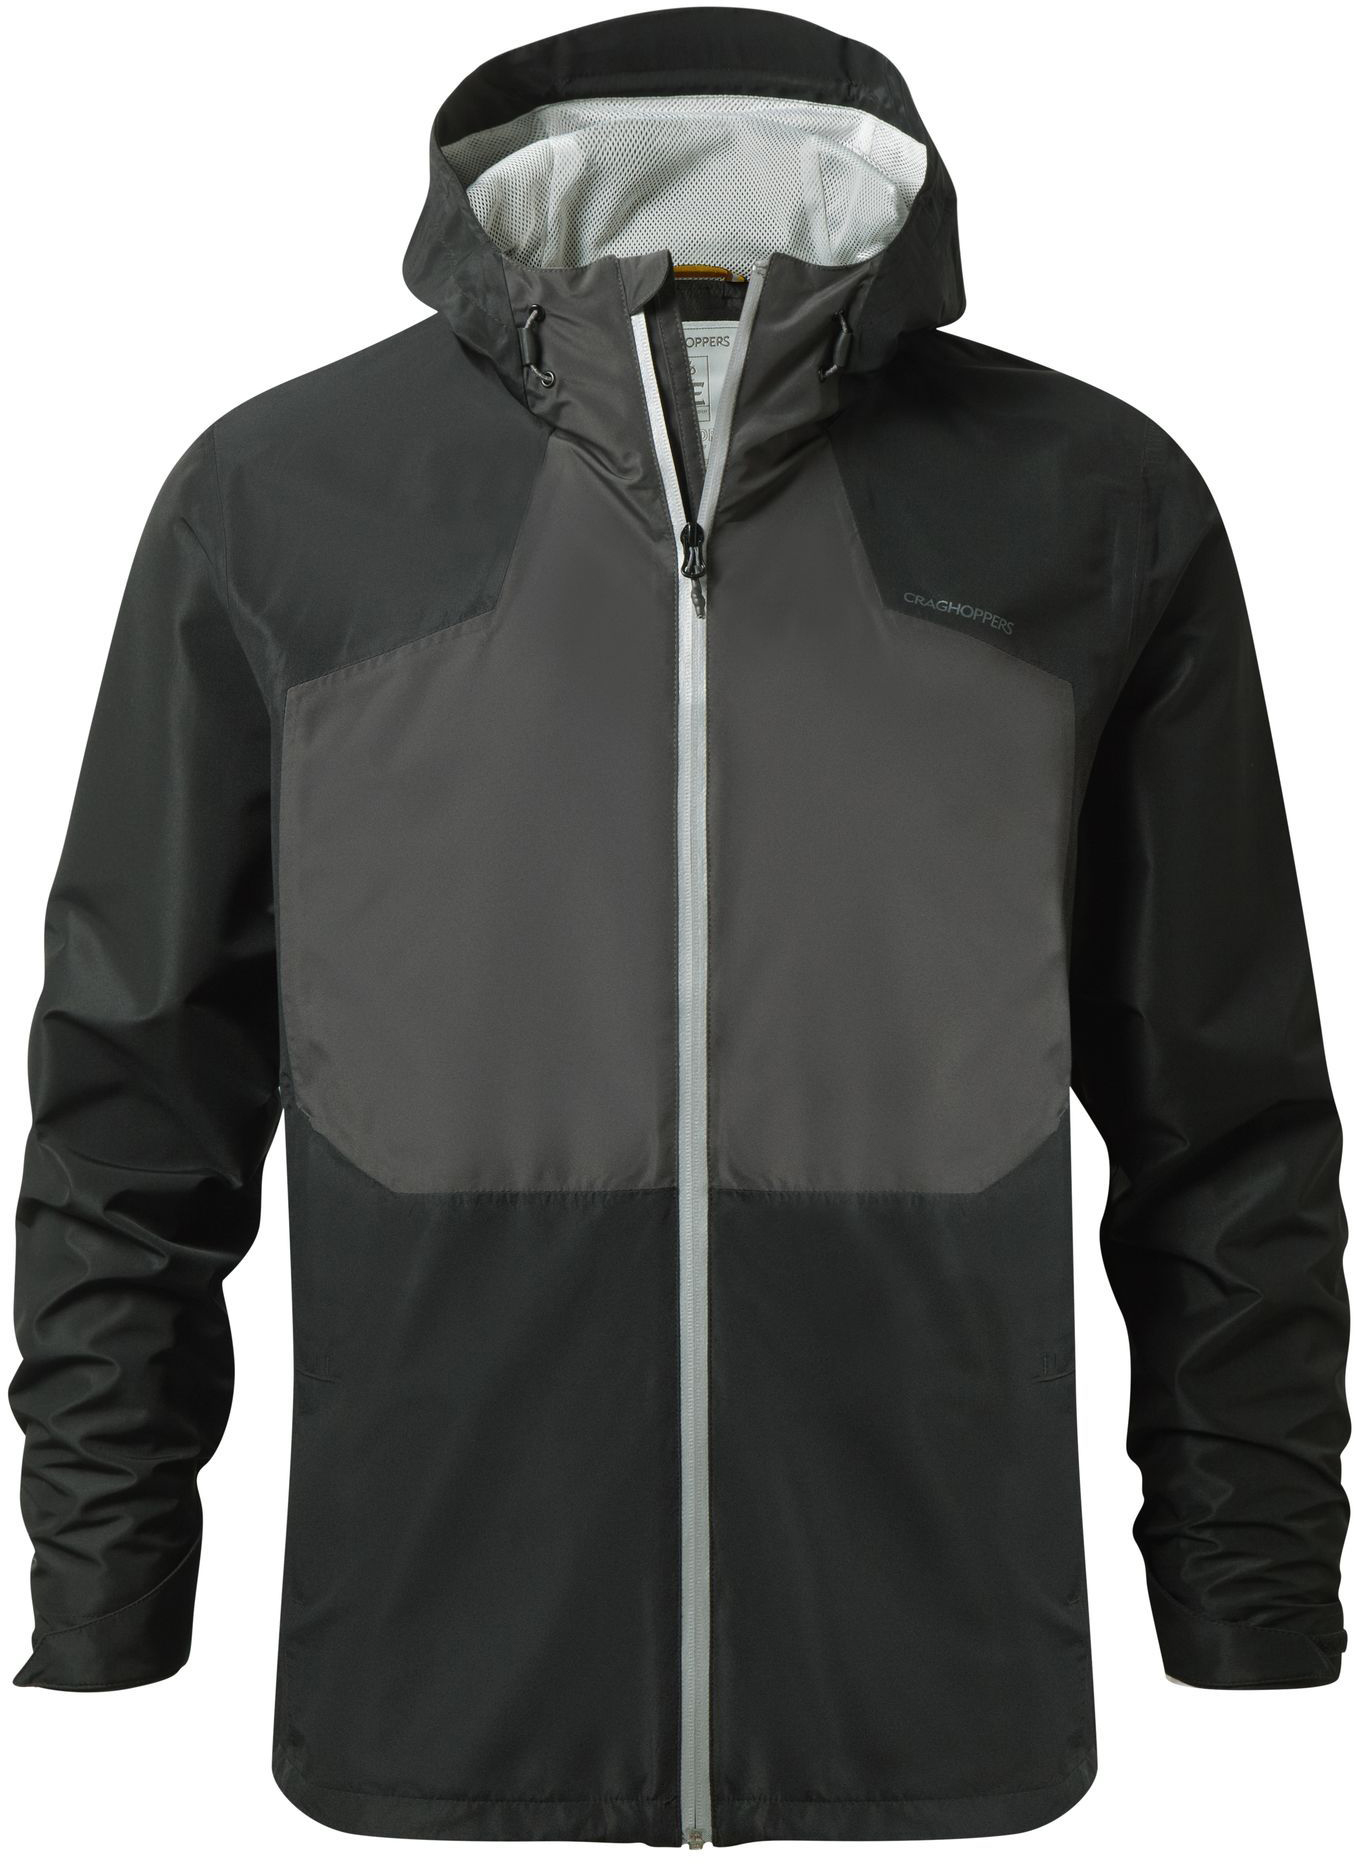 Craghoppers Apex Jacket | Jackets